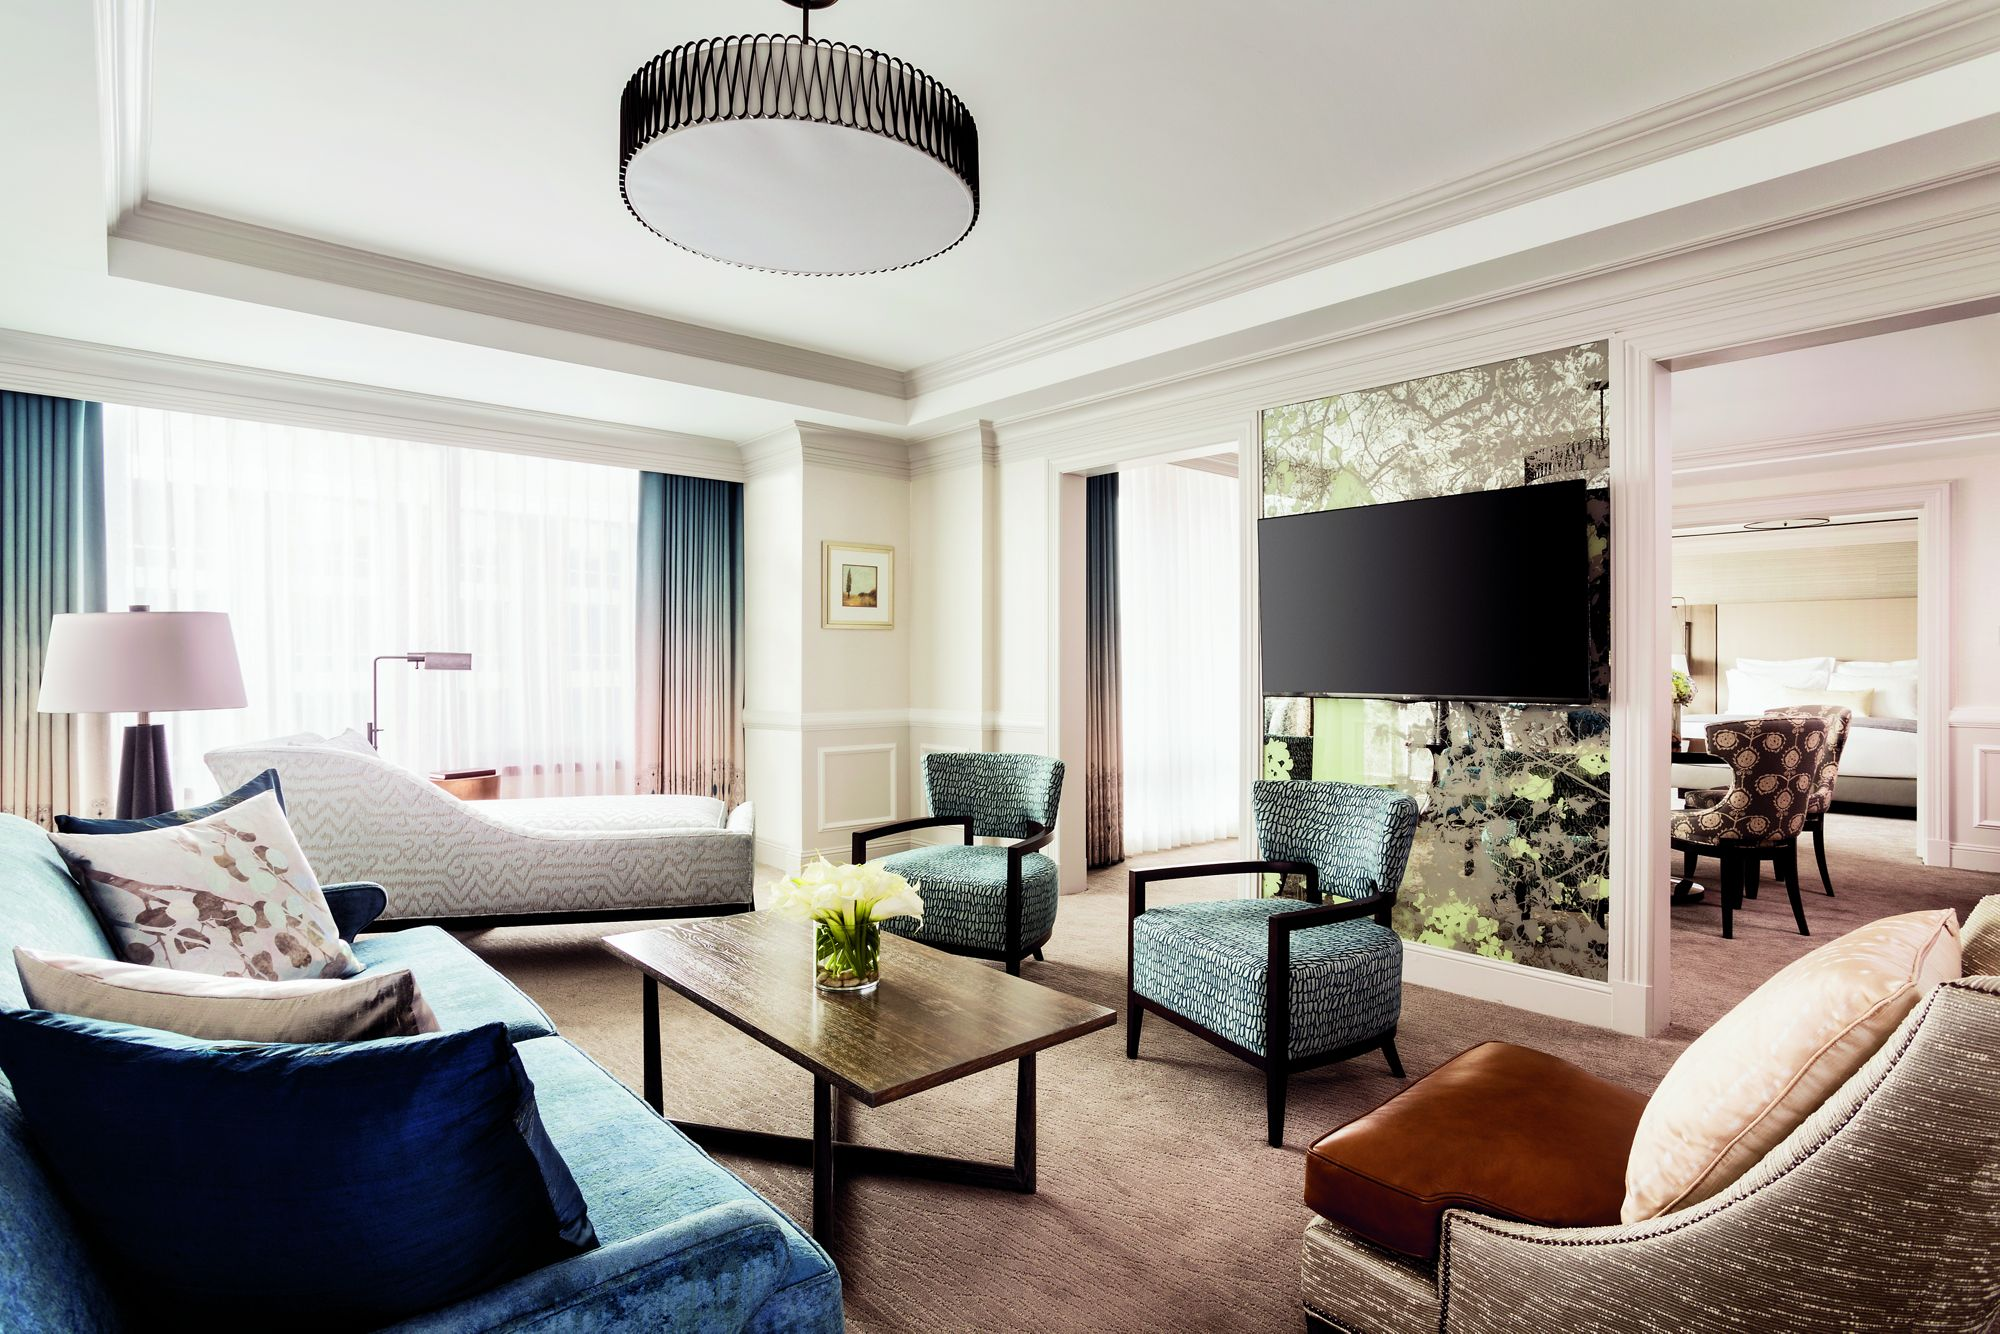 5 Luxury Boutique Hotels in Washington D.C.